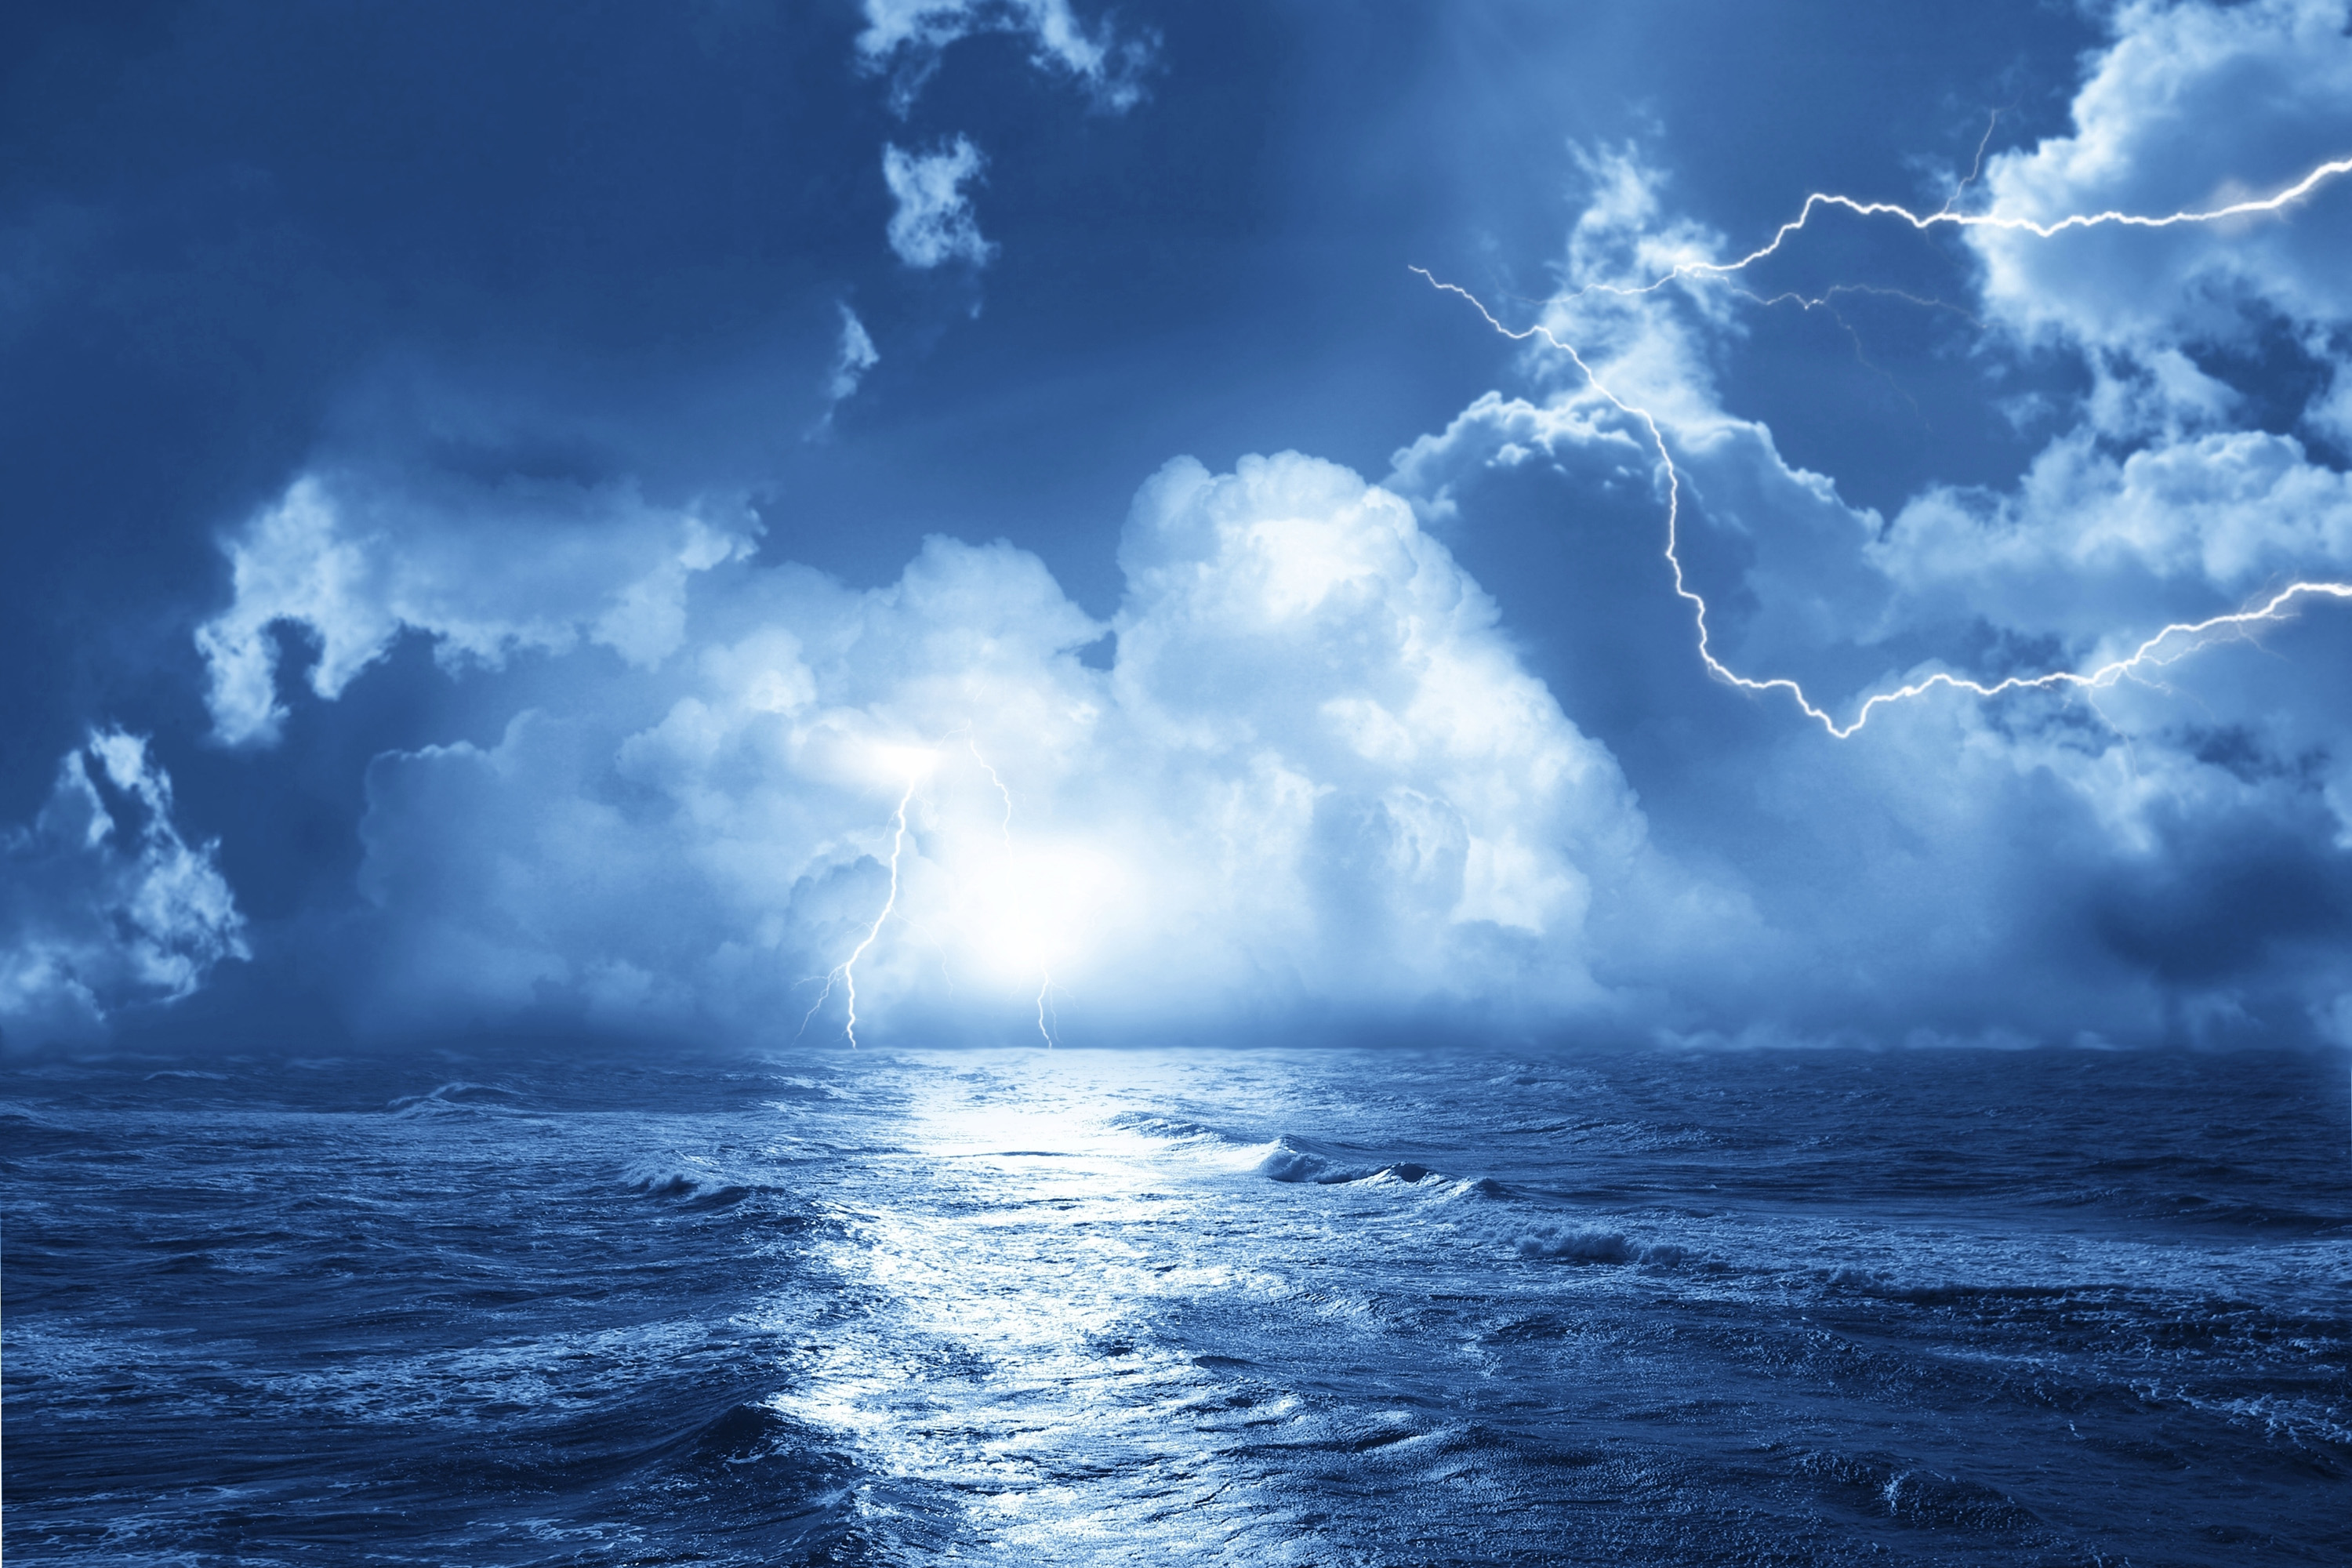 Ocean Storm Desktop Backgrounds HD wallpaper background 3000x2000